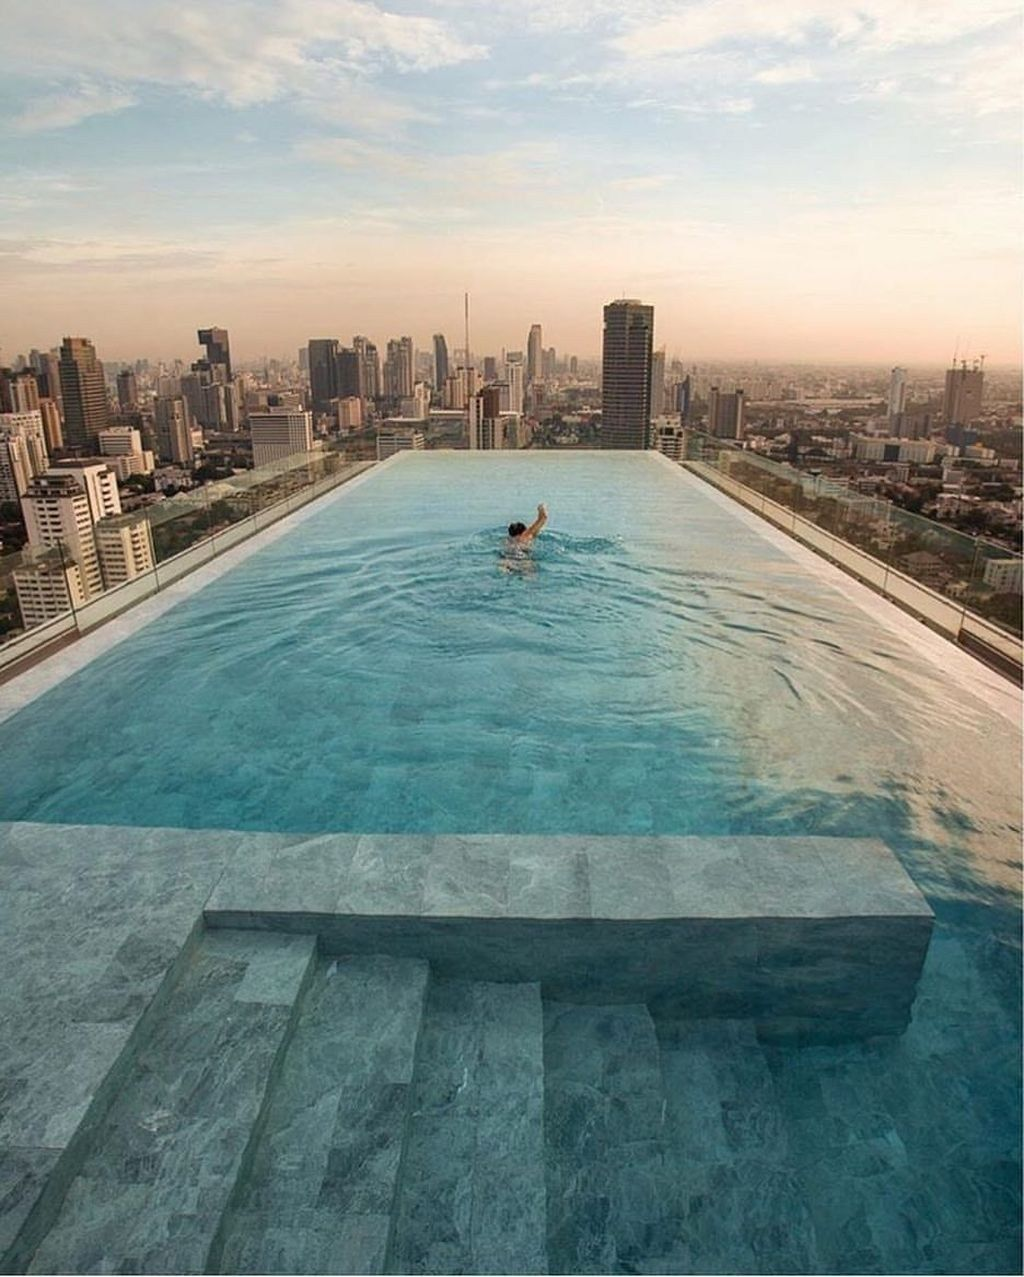 Most Amazing Rooftop Pools That You Must Jump In At Least Once09 In 2020 Hotel Swimming Pool Rooftop Pool Pool City